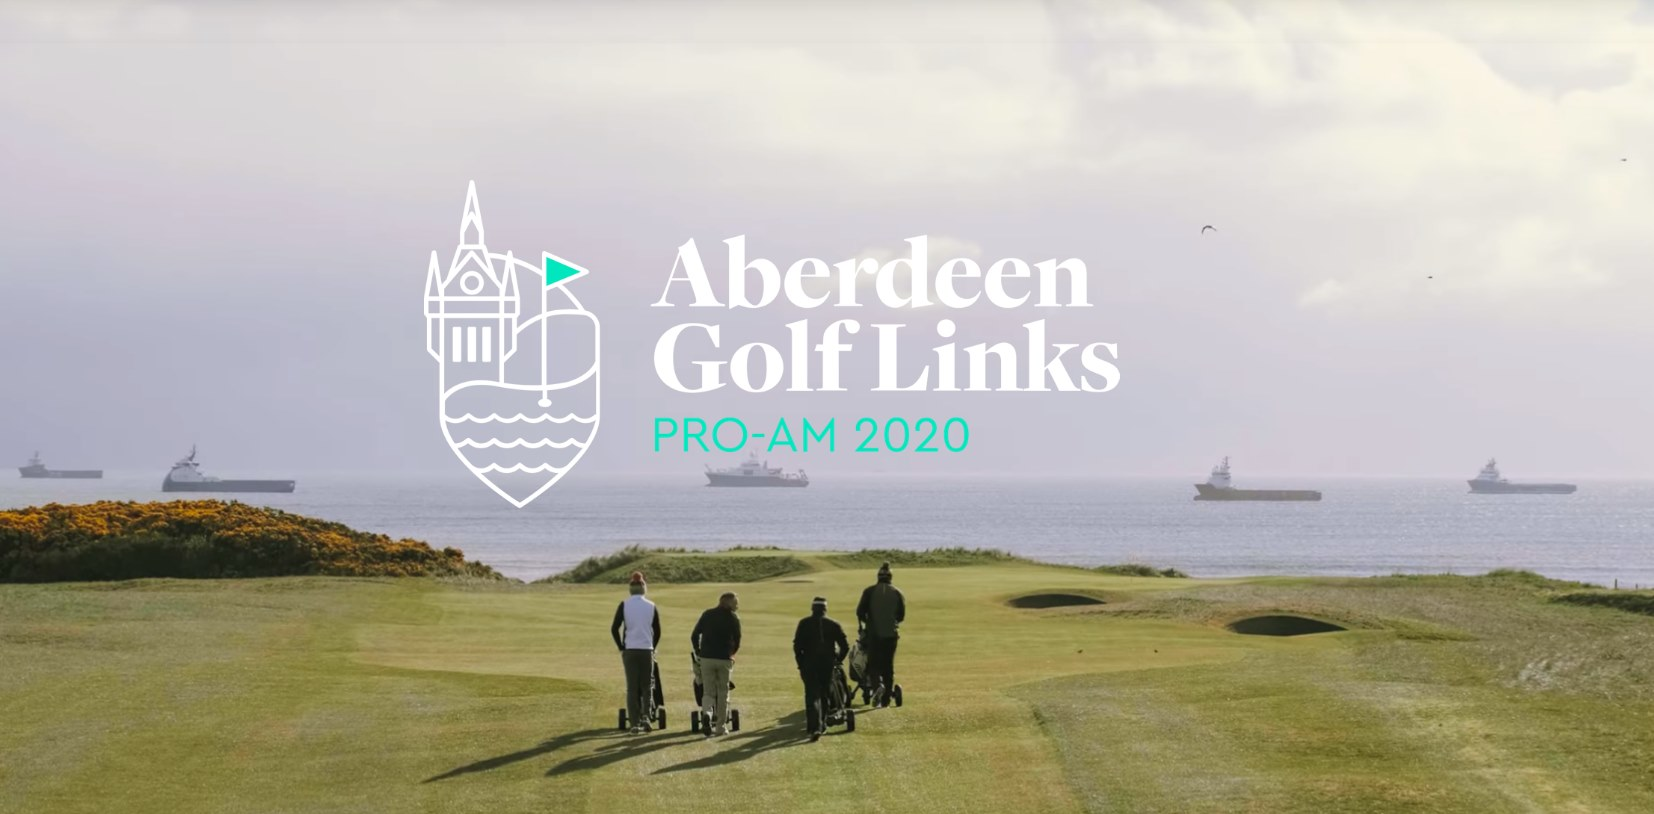 Golfers waiting to play on the Aberdeen Links Course